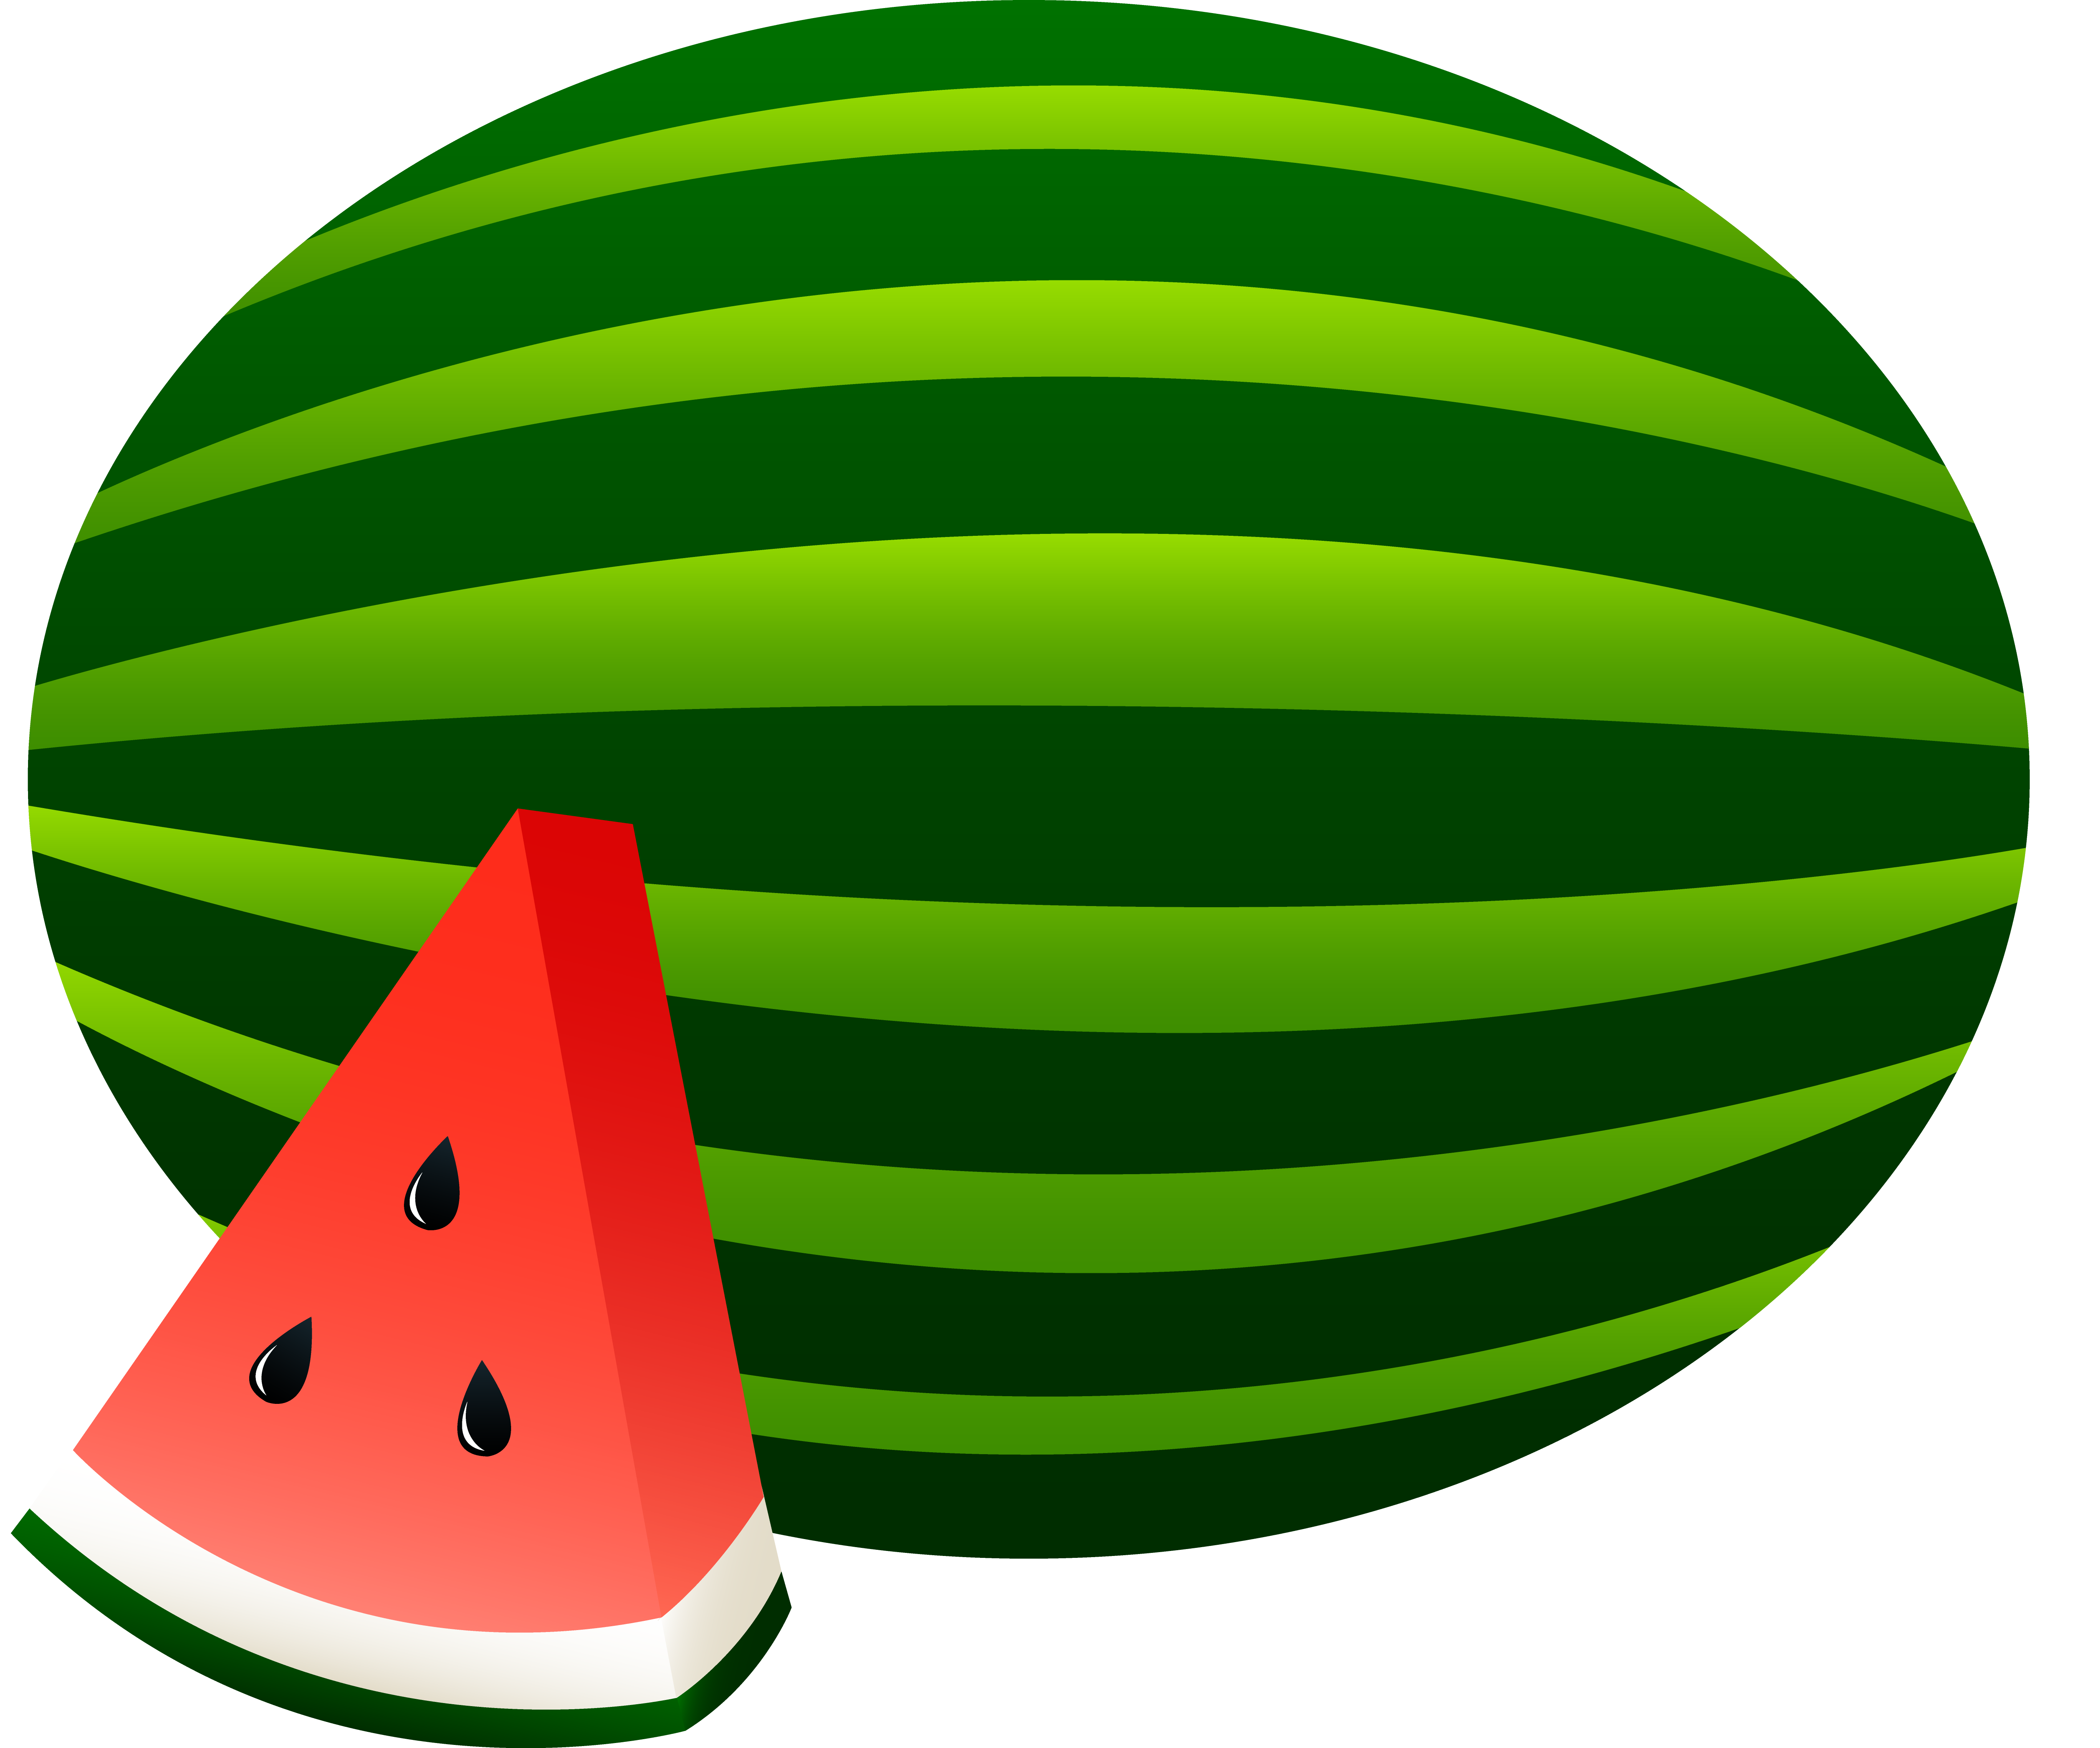 5469x4551 Watermelon Whole and Slice